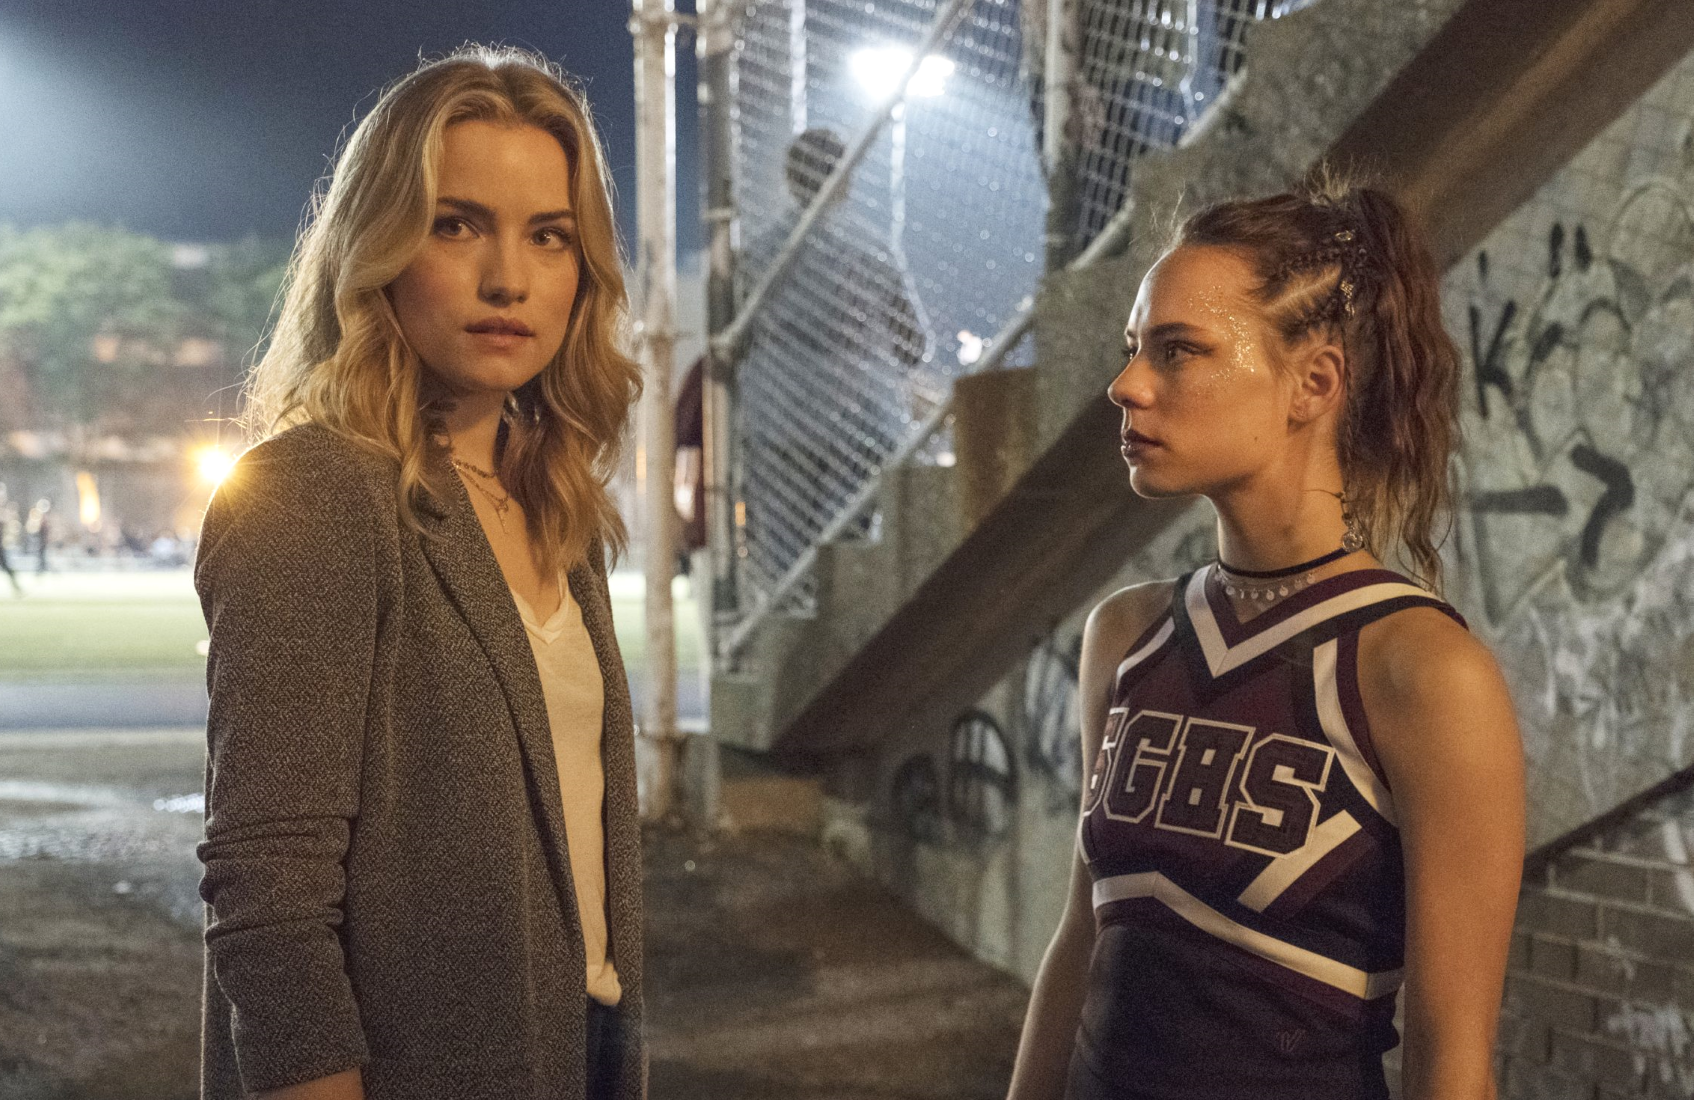 Willa Fitzgerald and Marlo Kelly in an image from Sunday's premiere of Dare Me. (Photo: Rafy/USA Network)